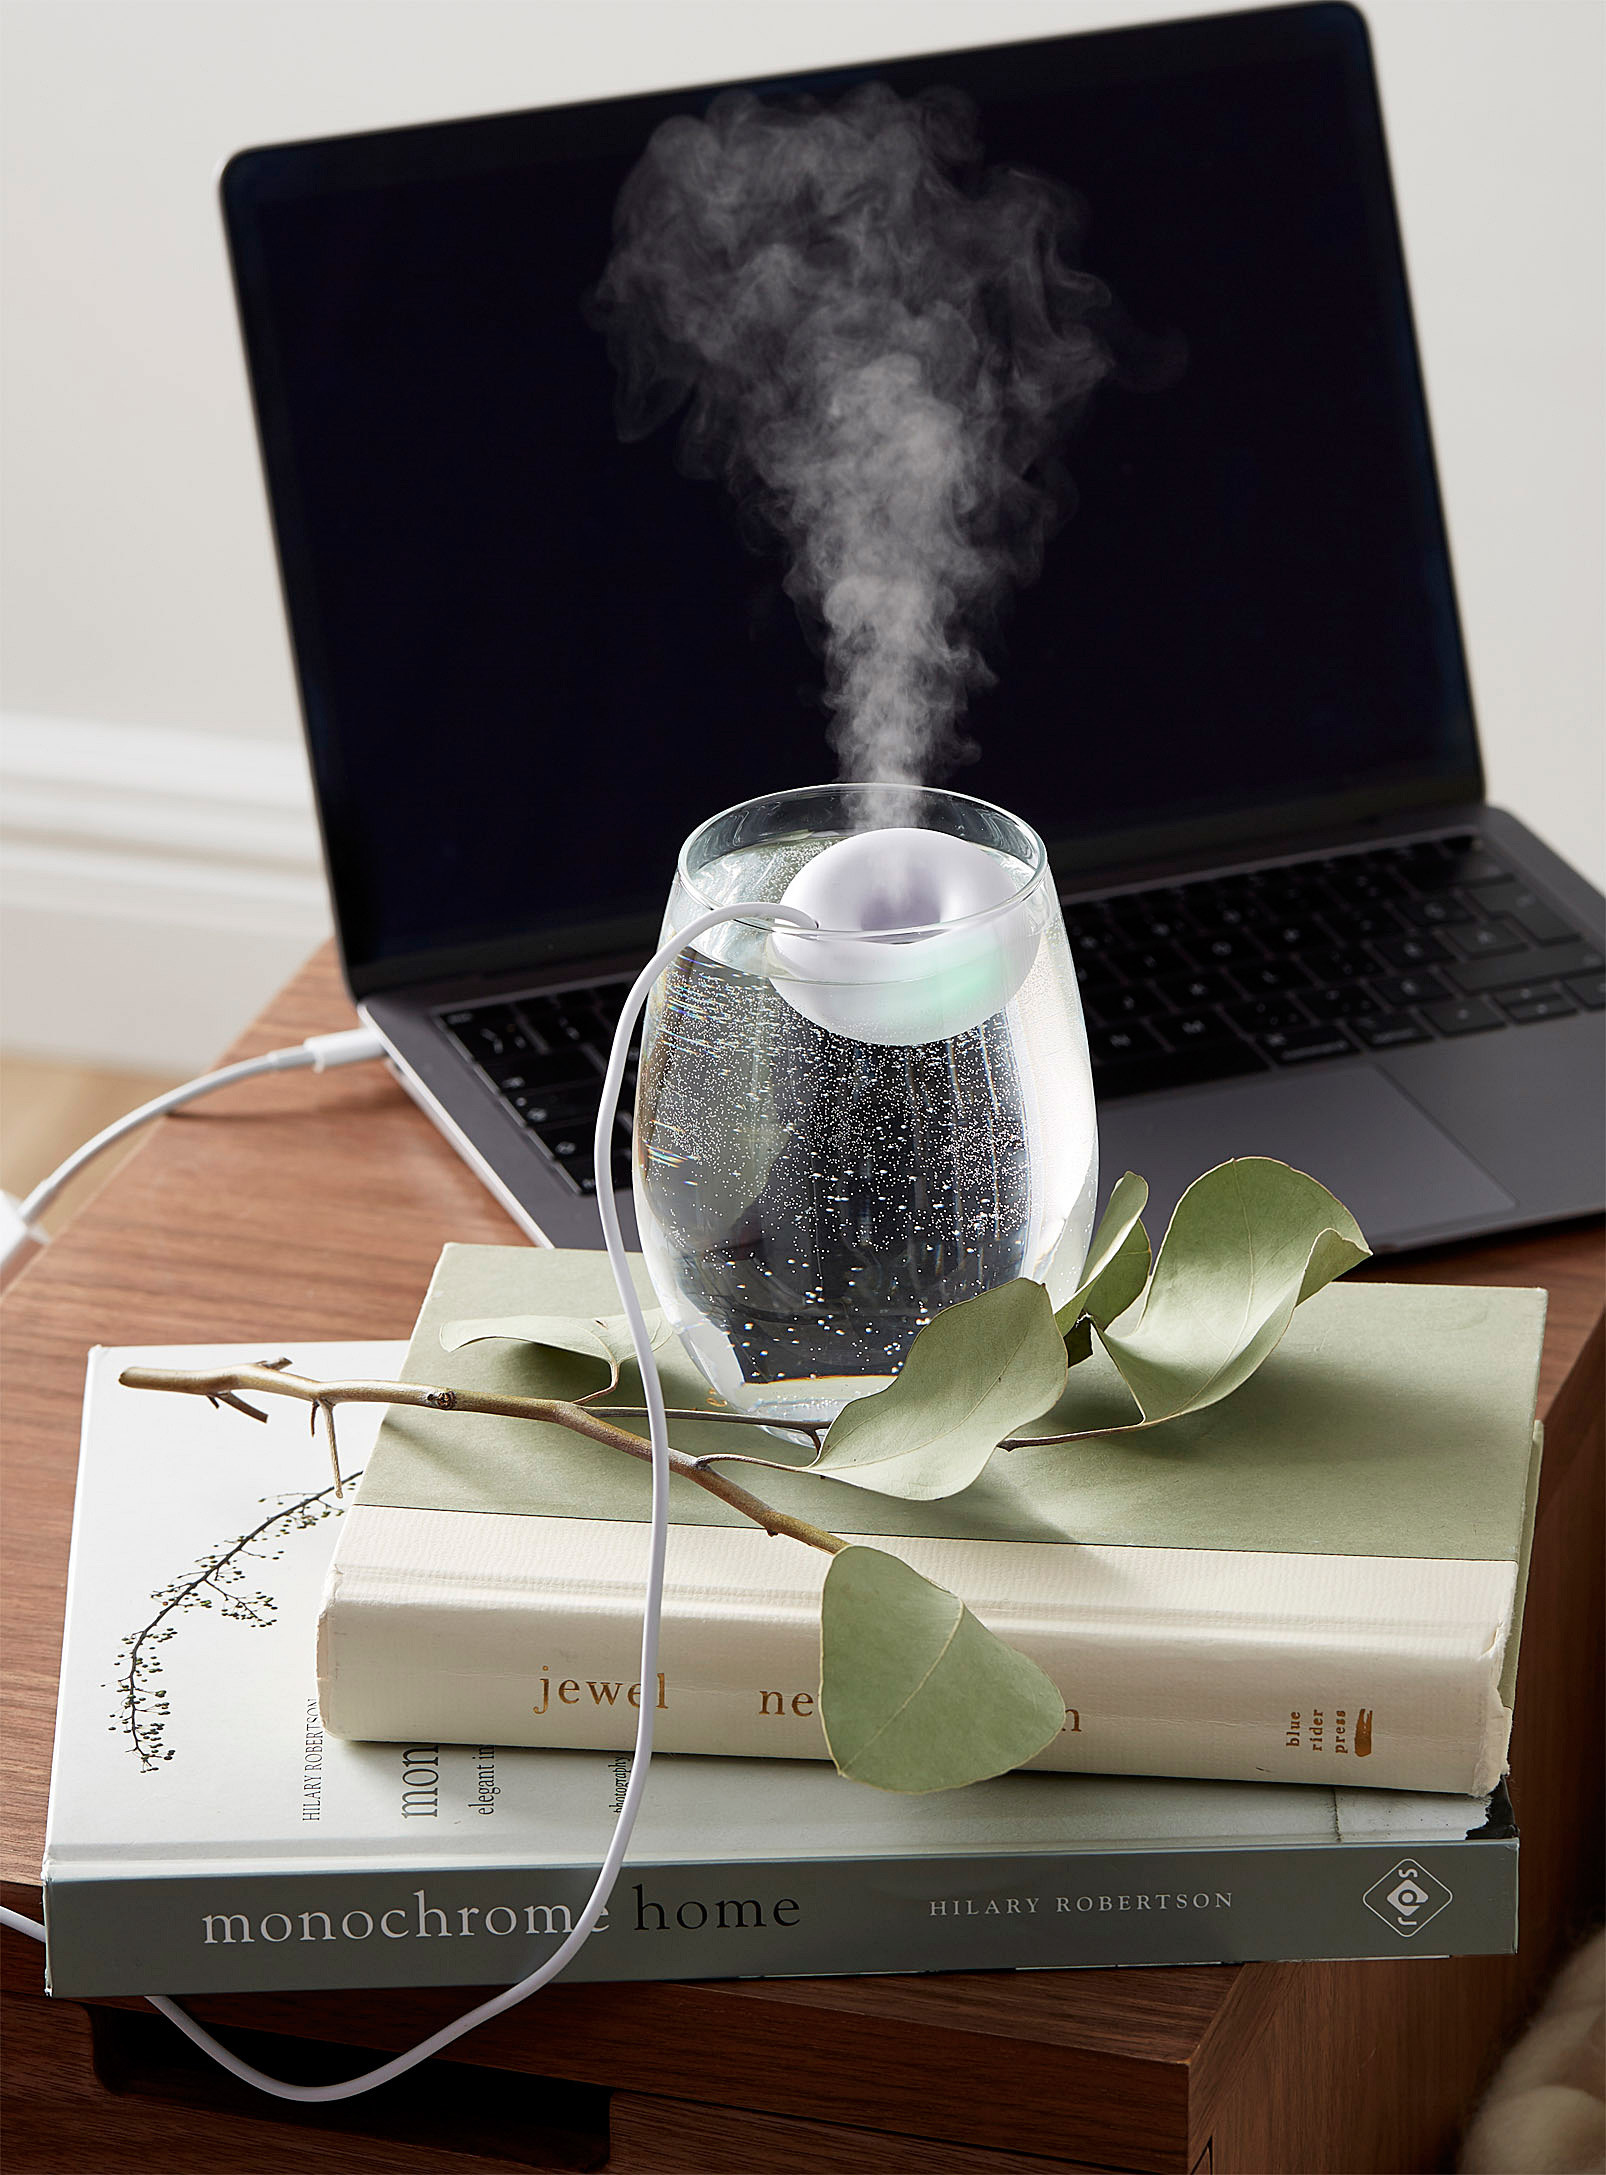 A floating humidifier in a glass of water